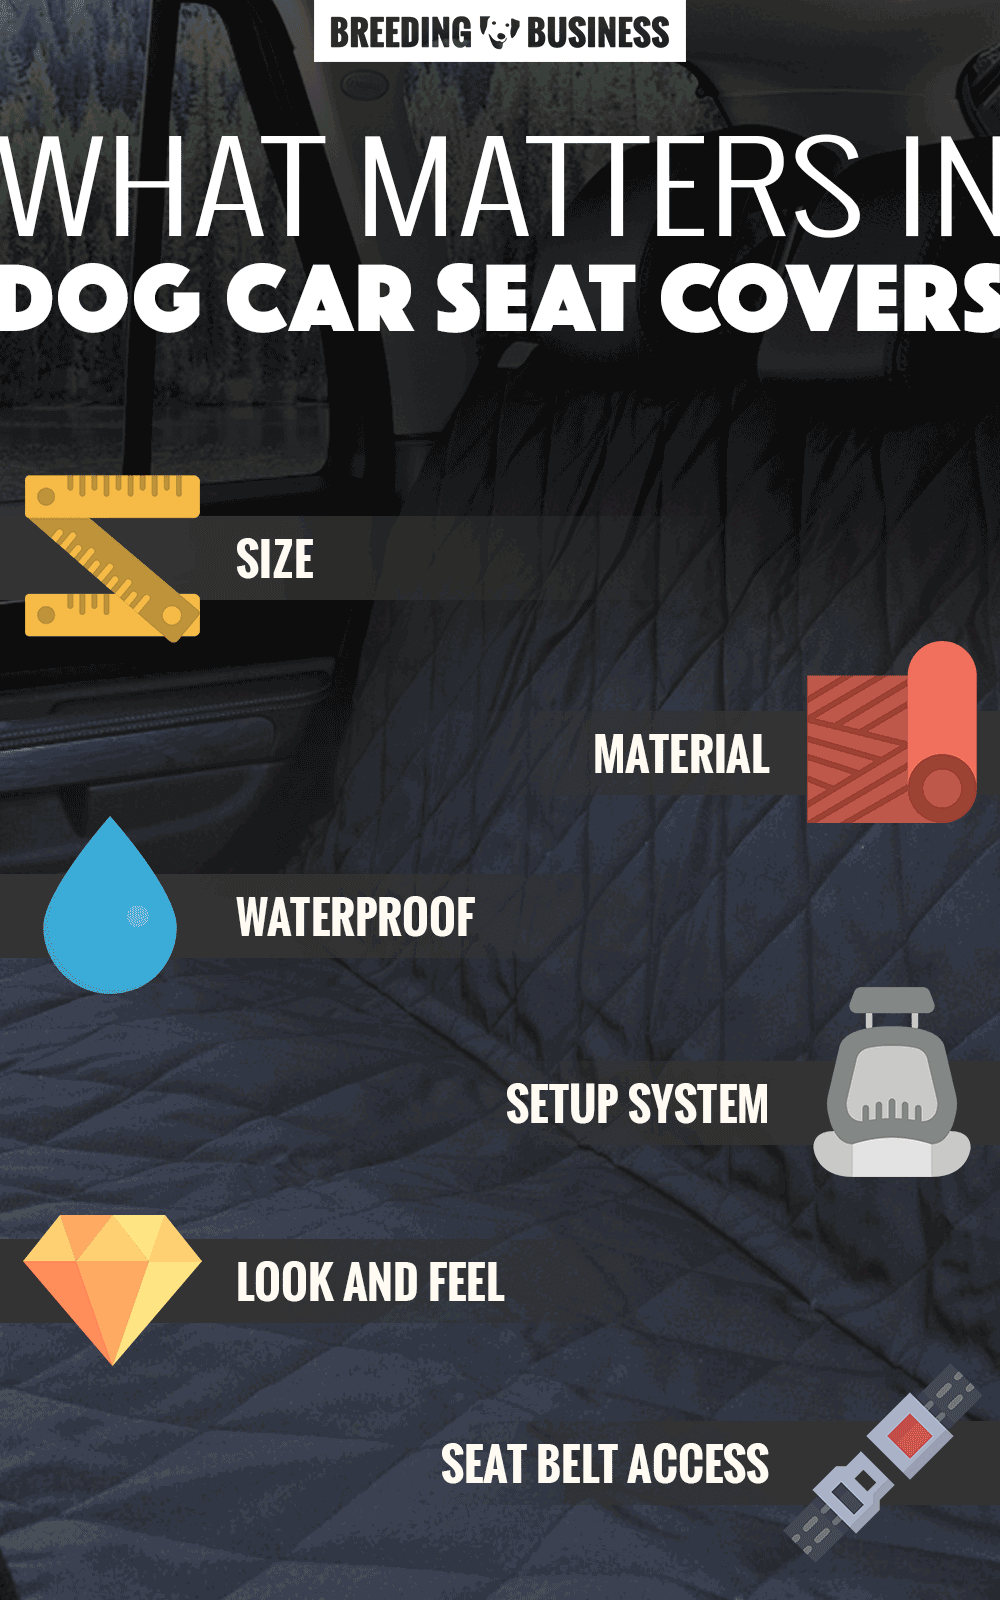 3 Best Dog Car Seat Covers For SUVs Cars And Trucks In 2017